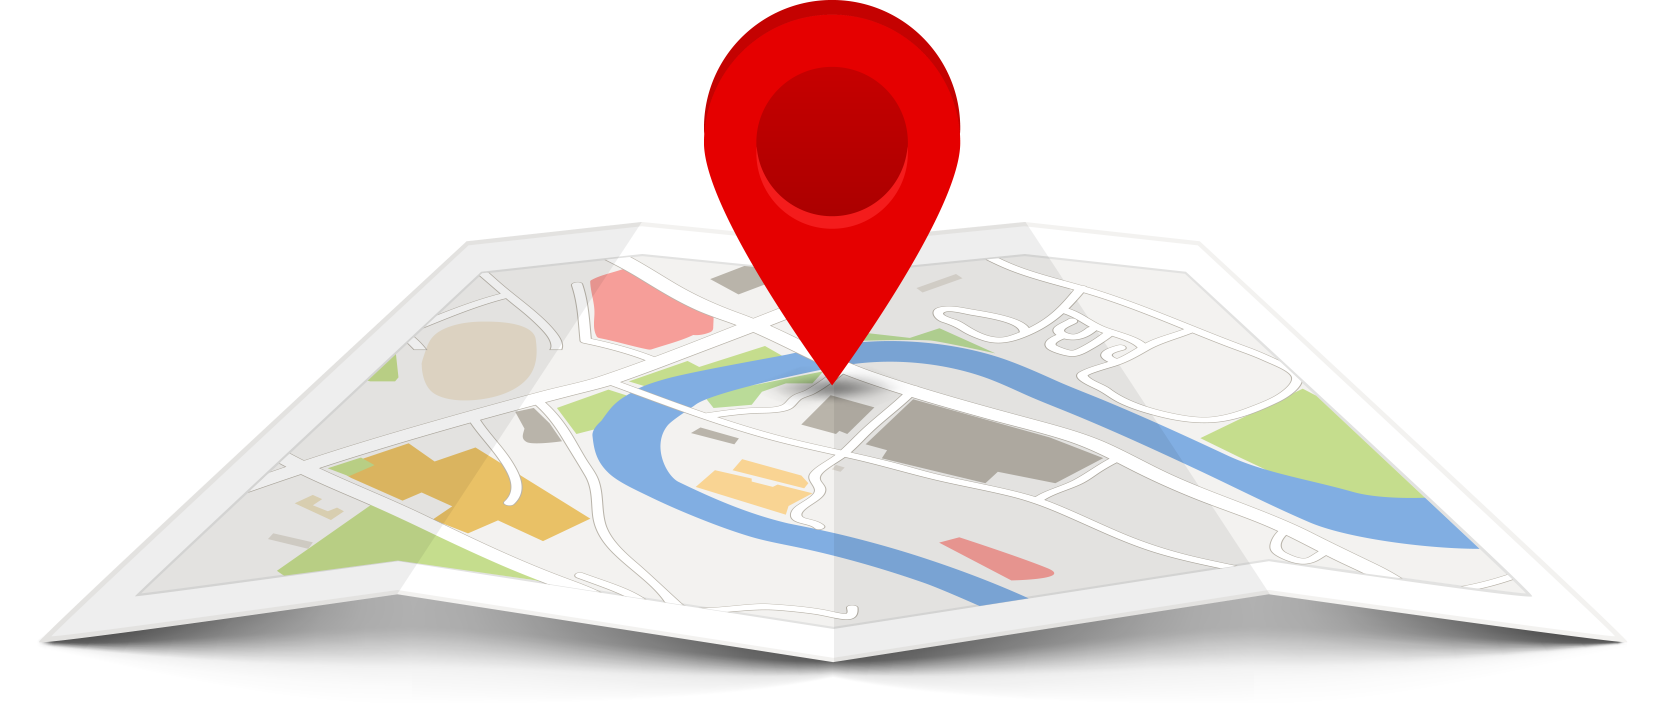 How to Know the Sender's Location in Gmail